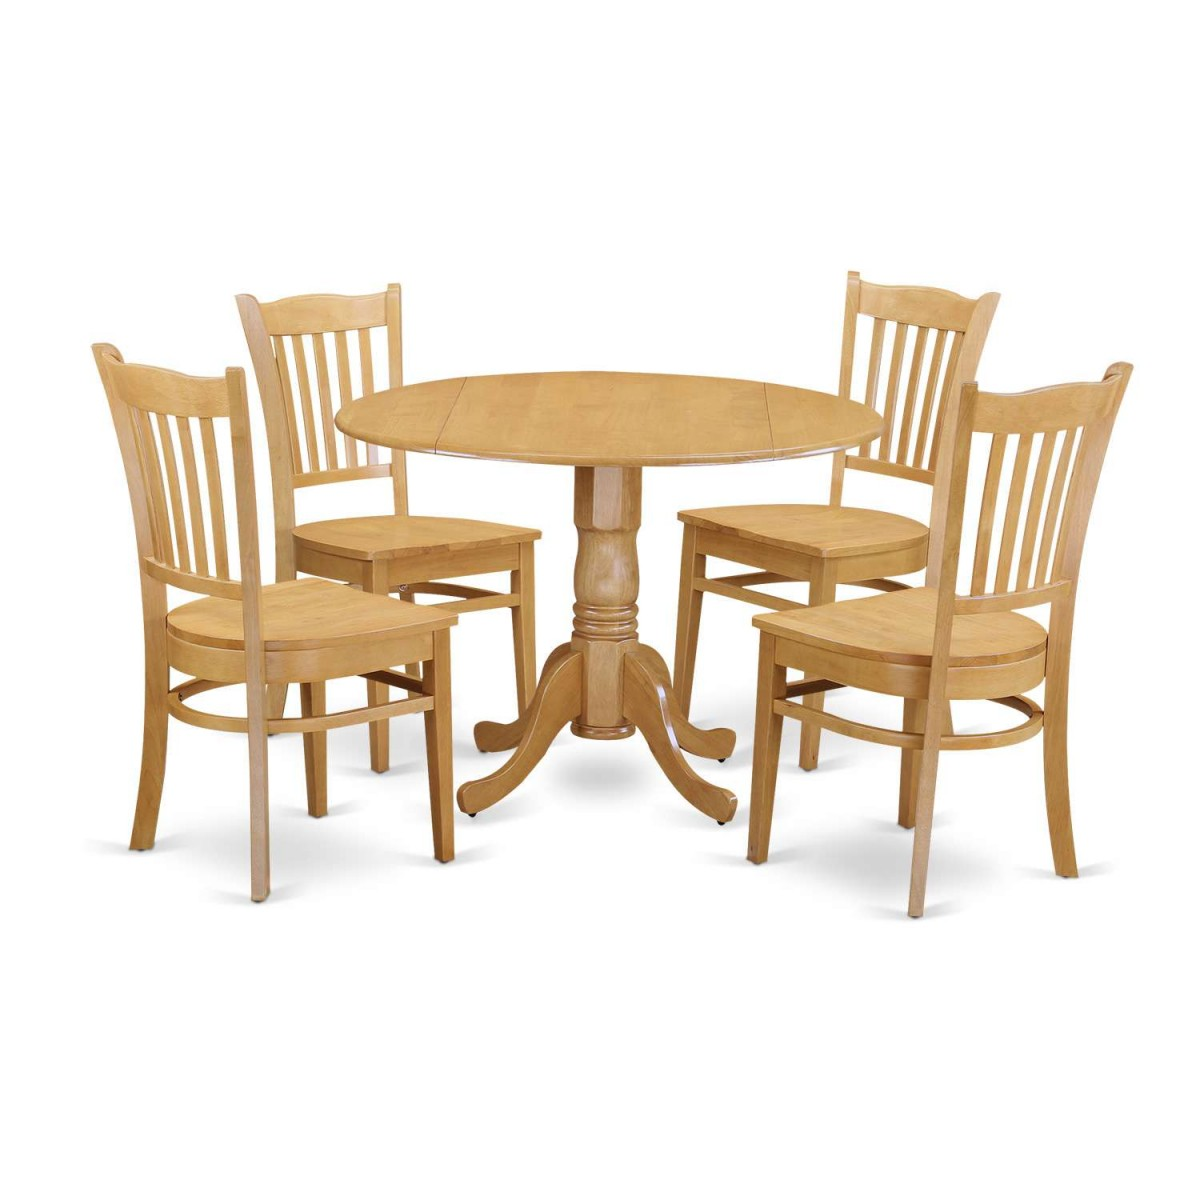 Kitchen Table And Chairs Dublin: East West Furniture Dublin 5 Piece Kitchen Table Set